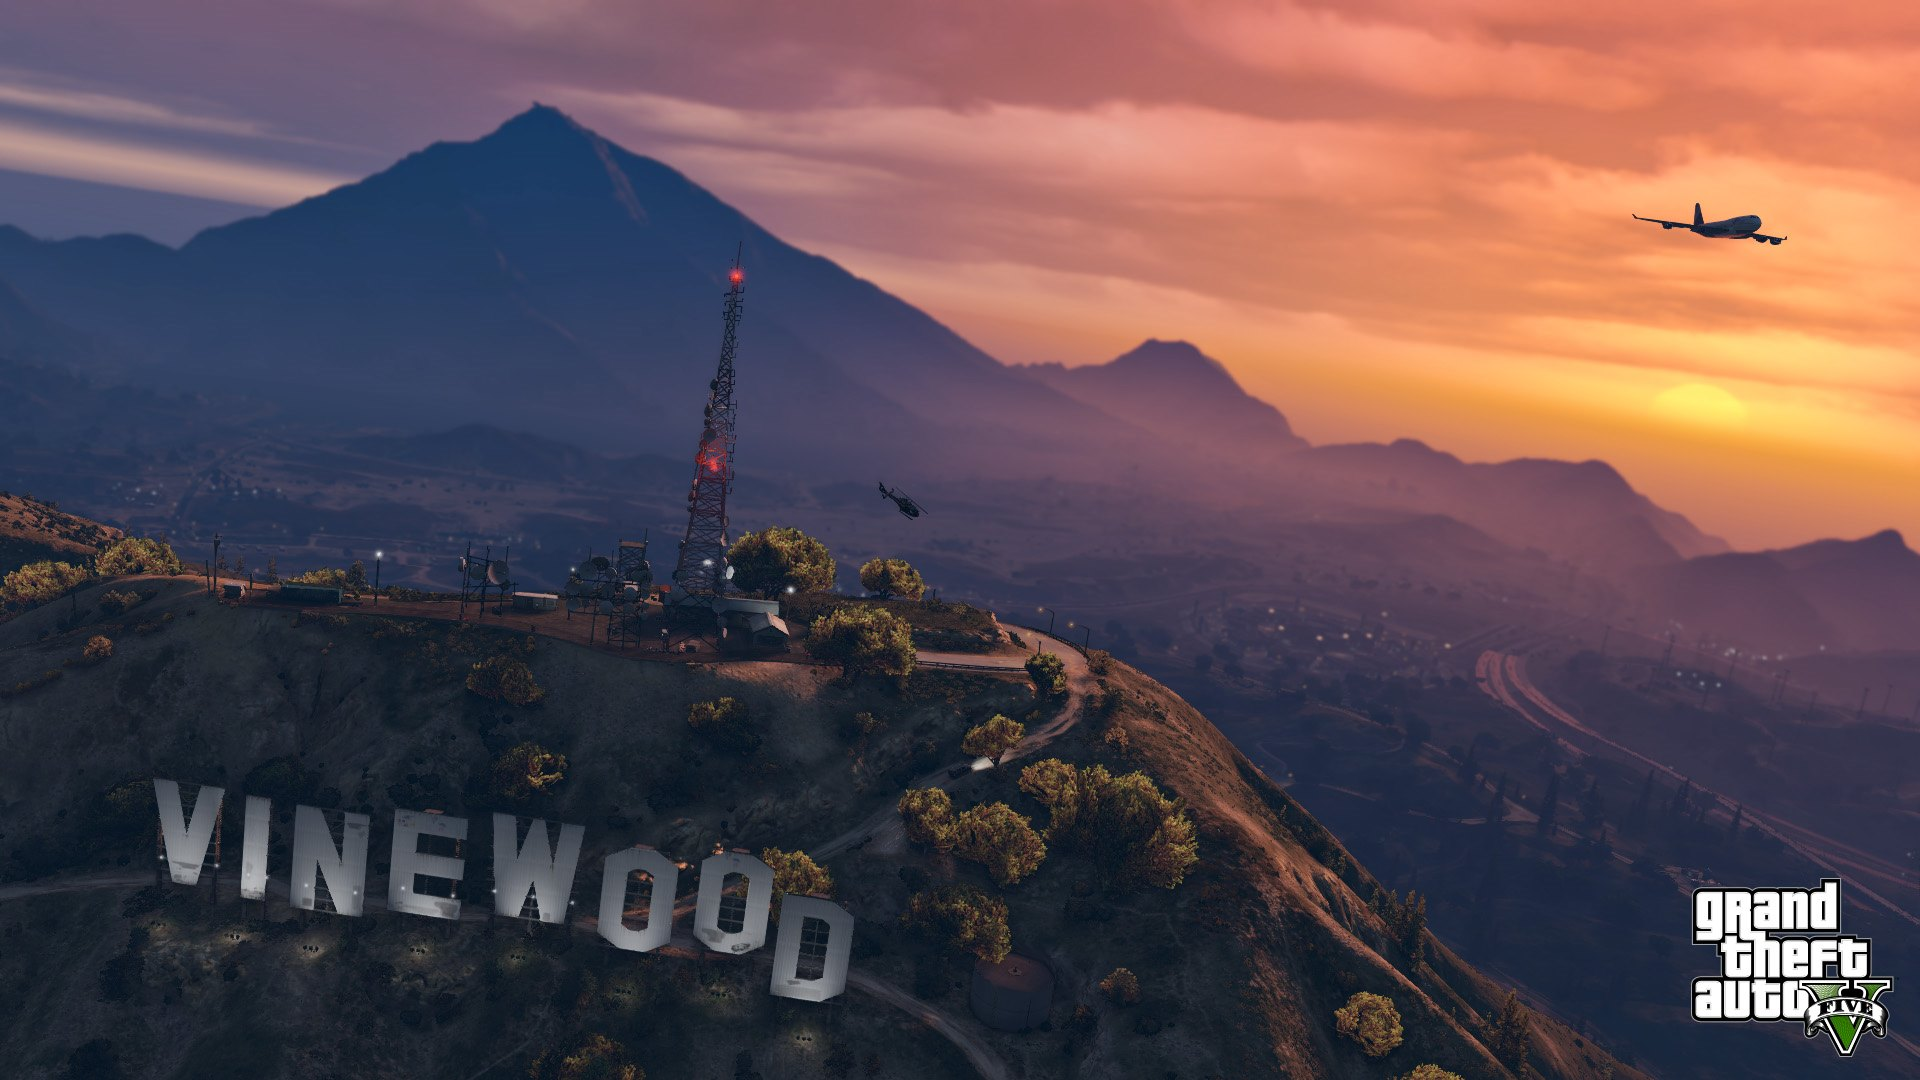 HD Wallpaper 3 Grand Theft Auto GTA 5 1920x1080